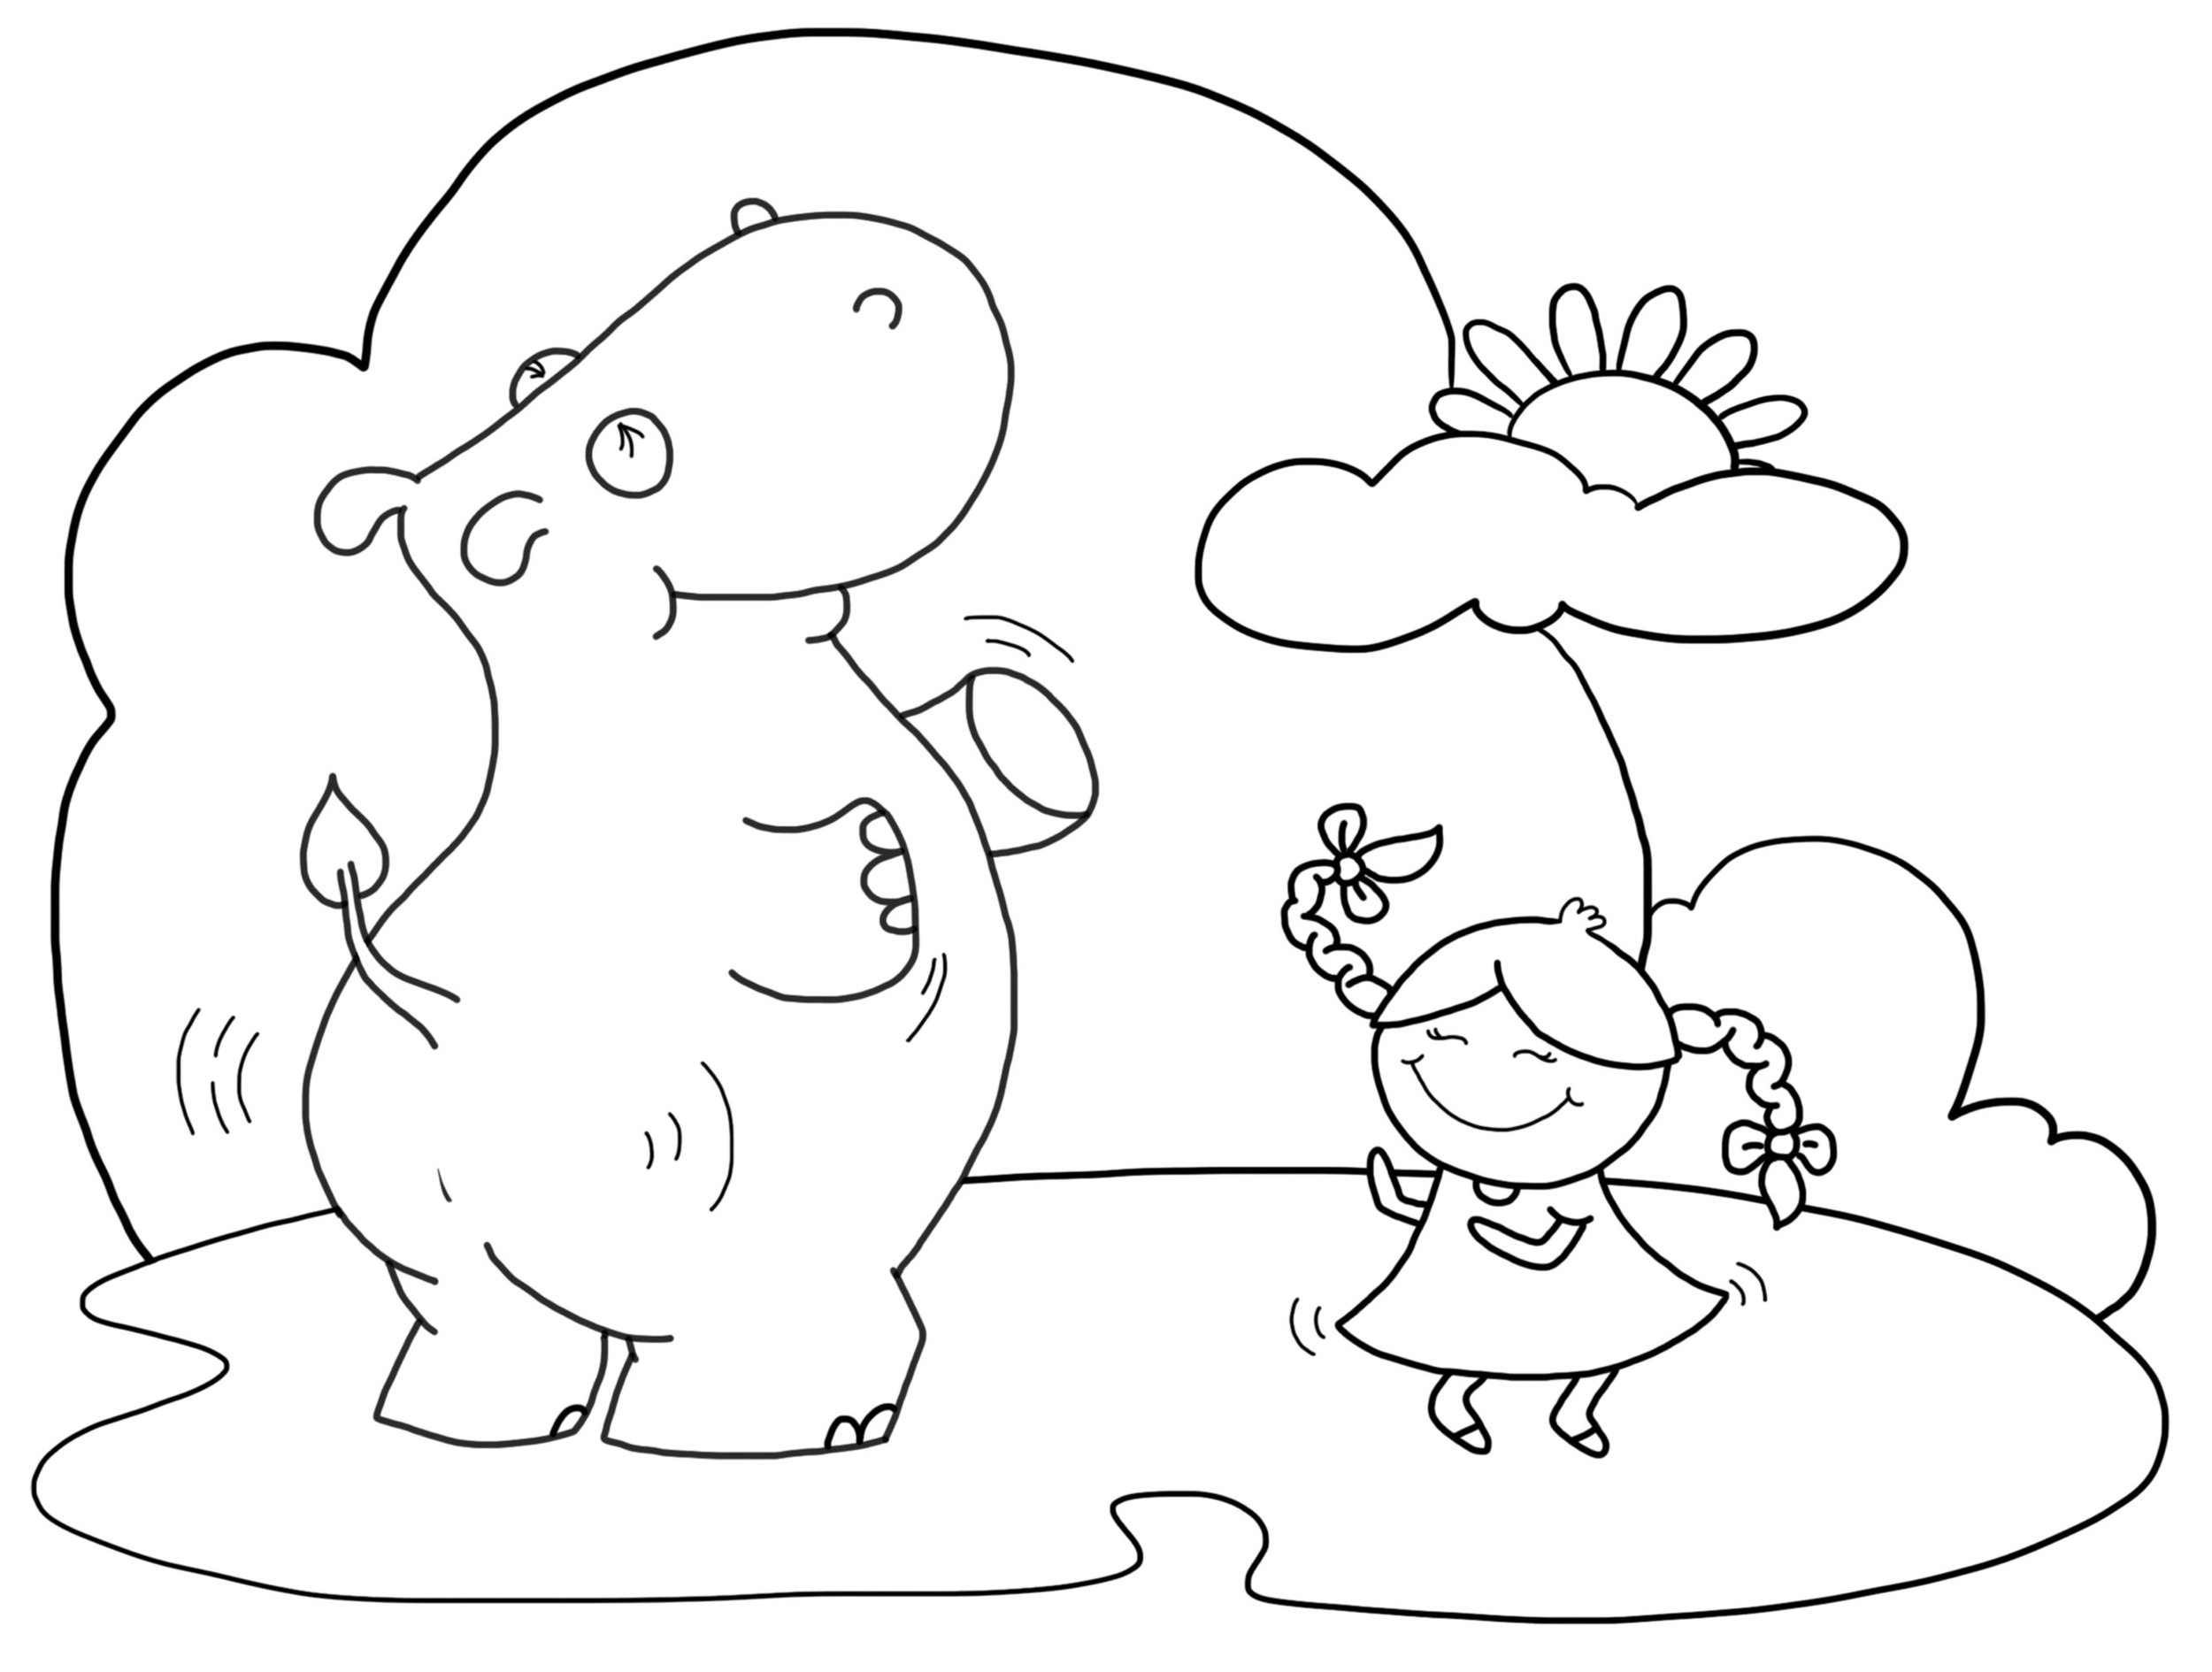 Colouring Sheets and Music - Use the special password ZanyZoo659 to gain access. This is a special password for community members. Please don't share it.